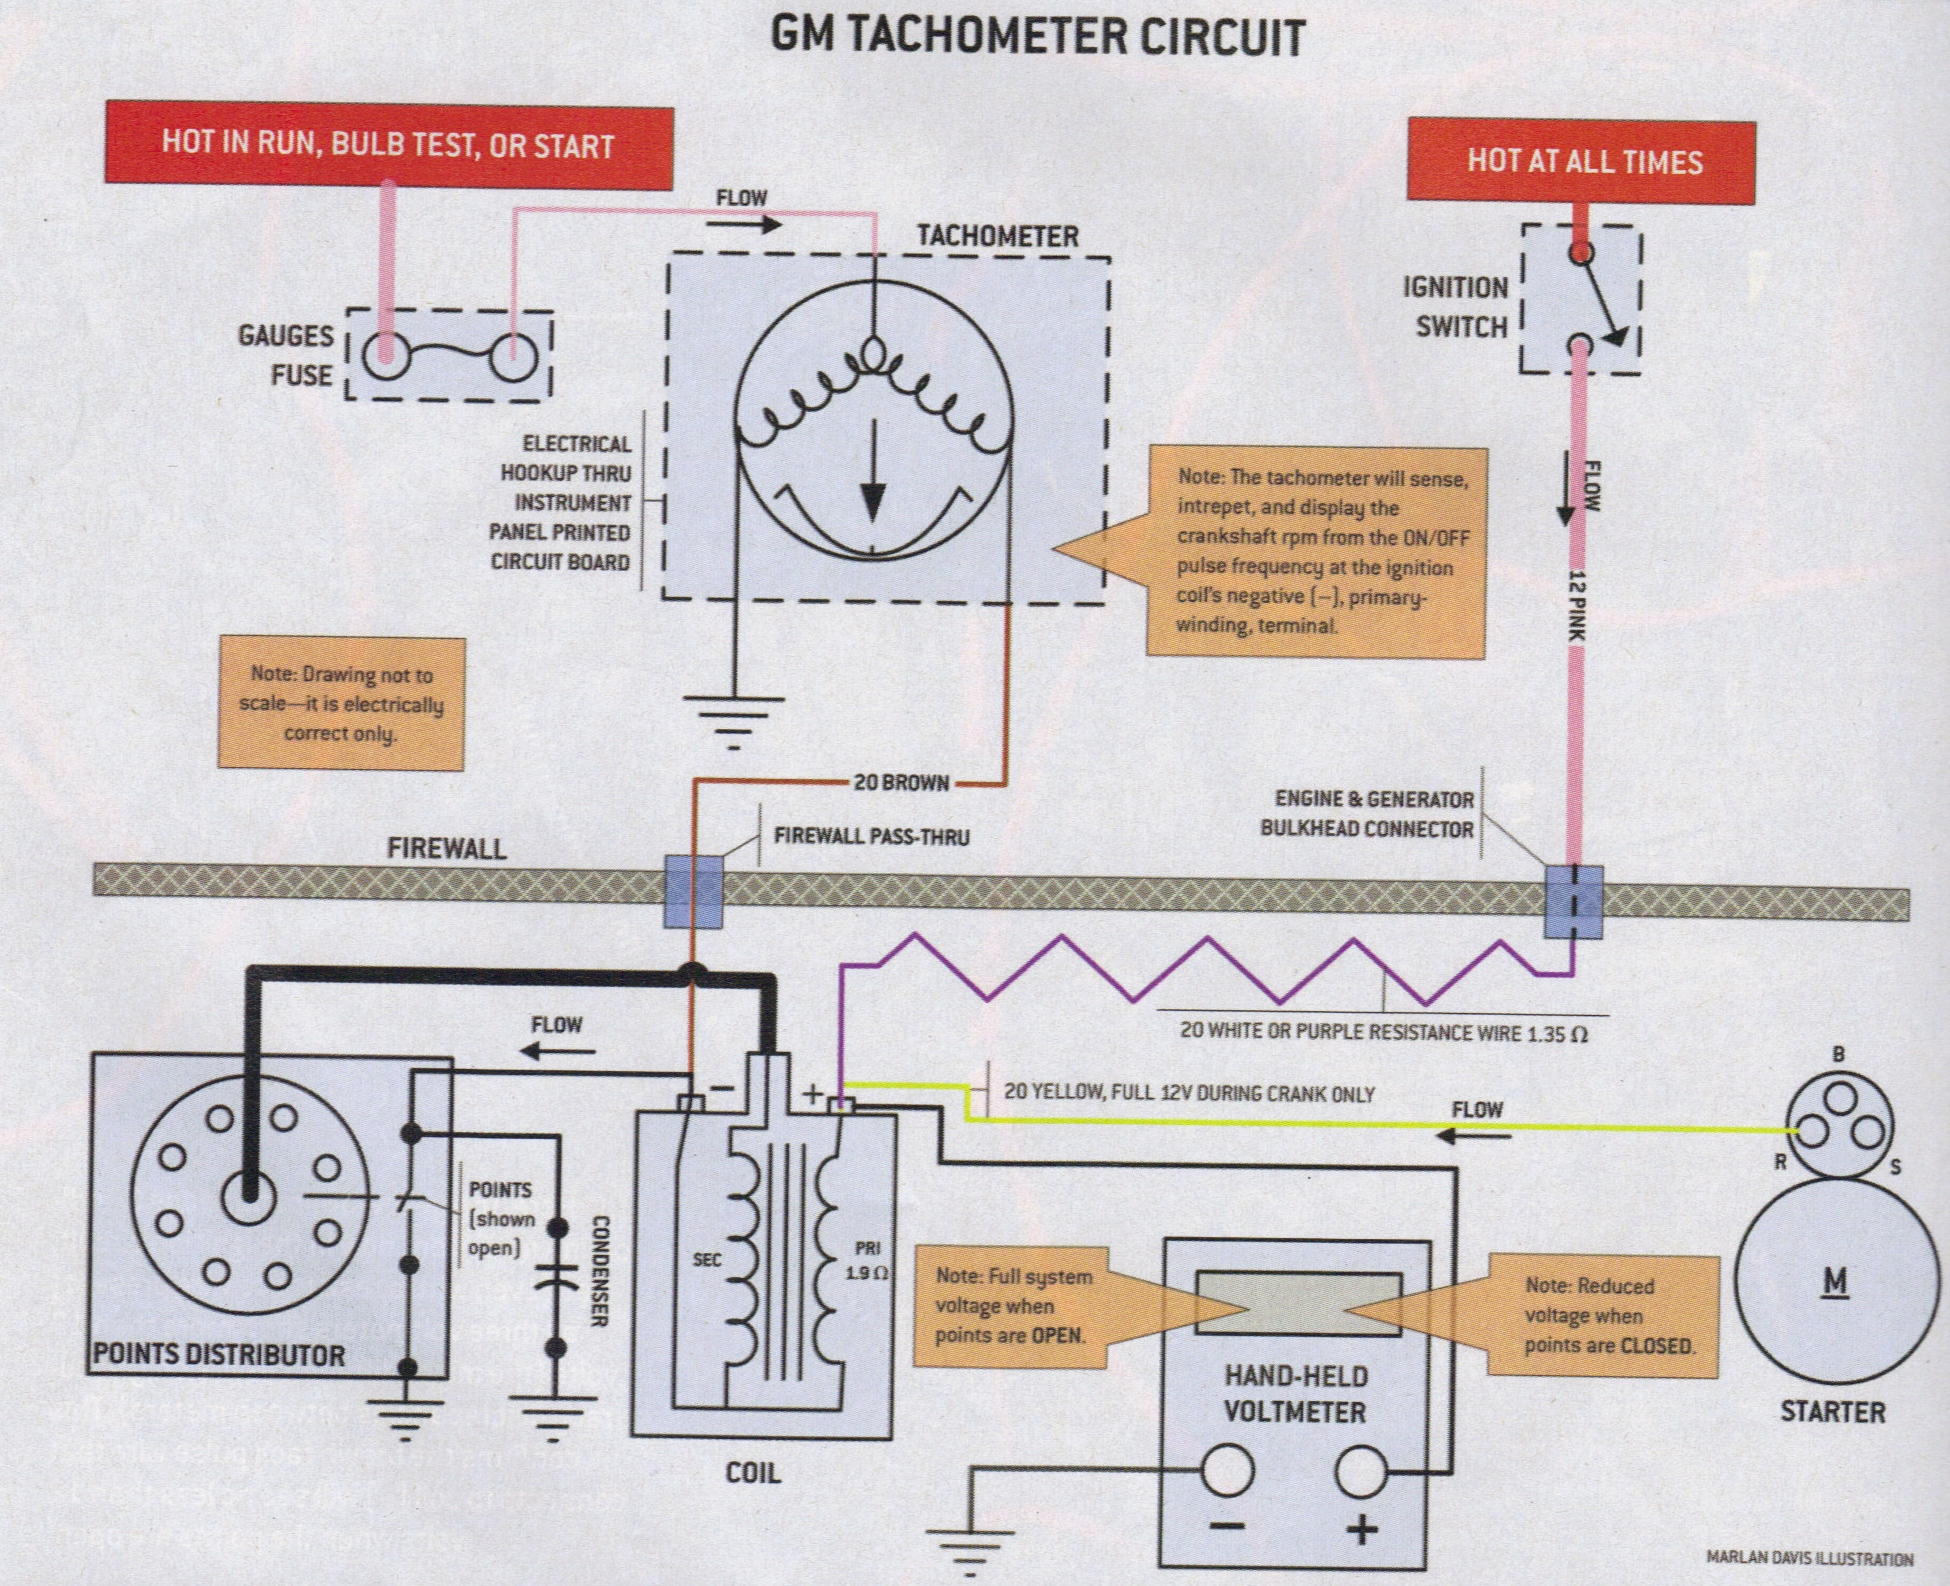 GM_Tach_Wiring?quality\=80\&strip\=all 1972 chevelle tach wiring diagram wiring diagram detailed